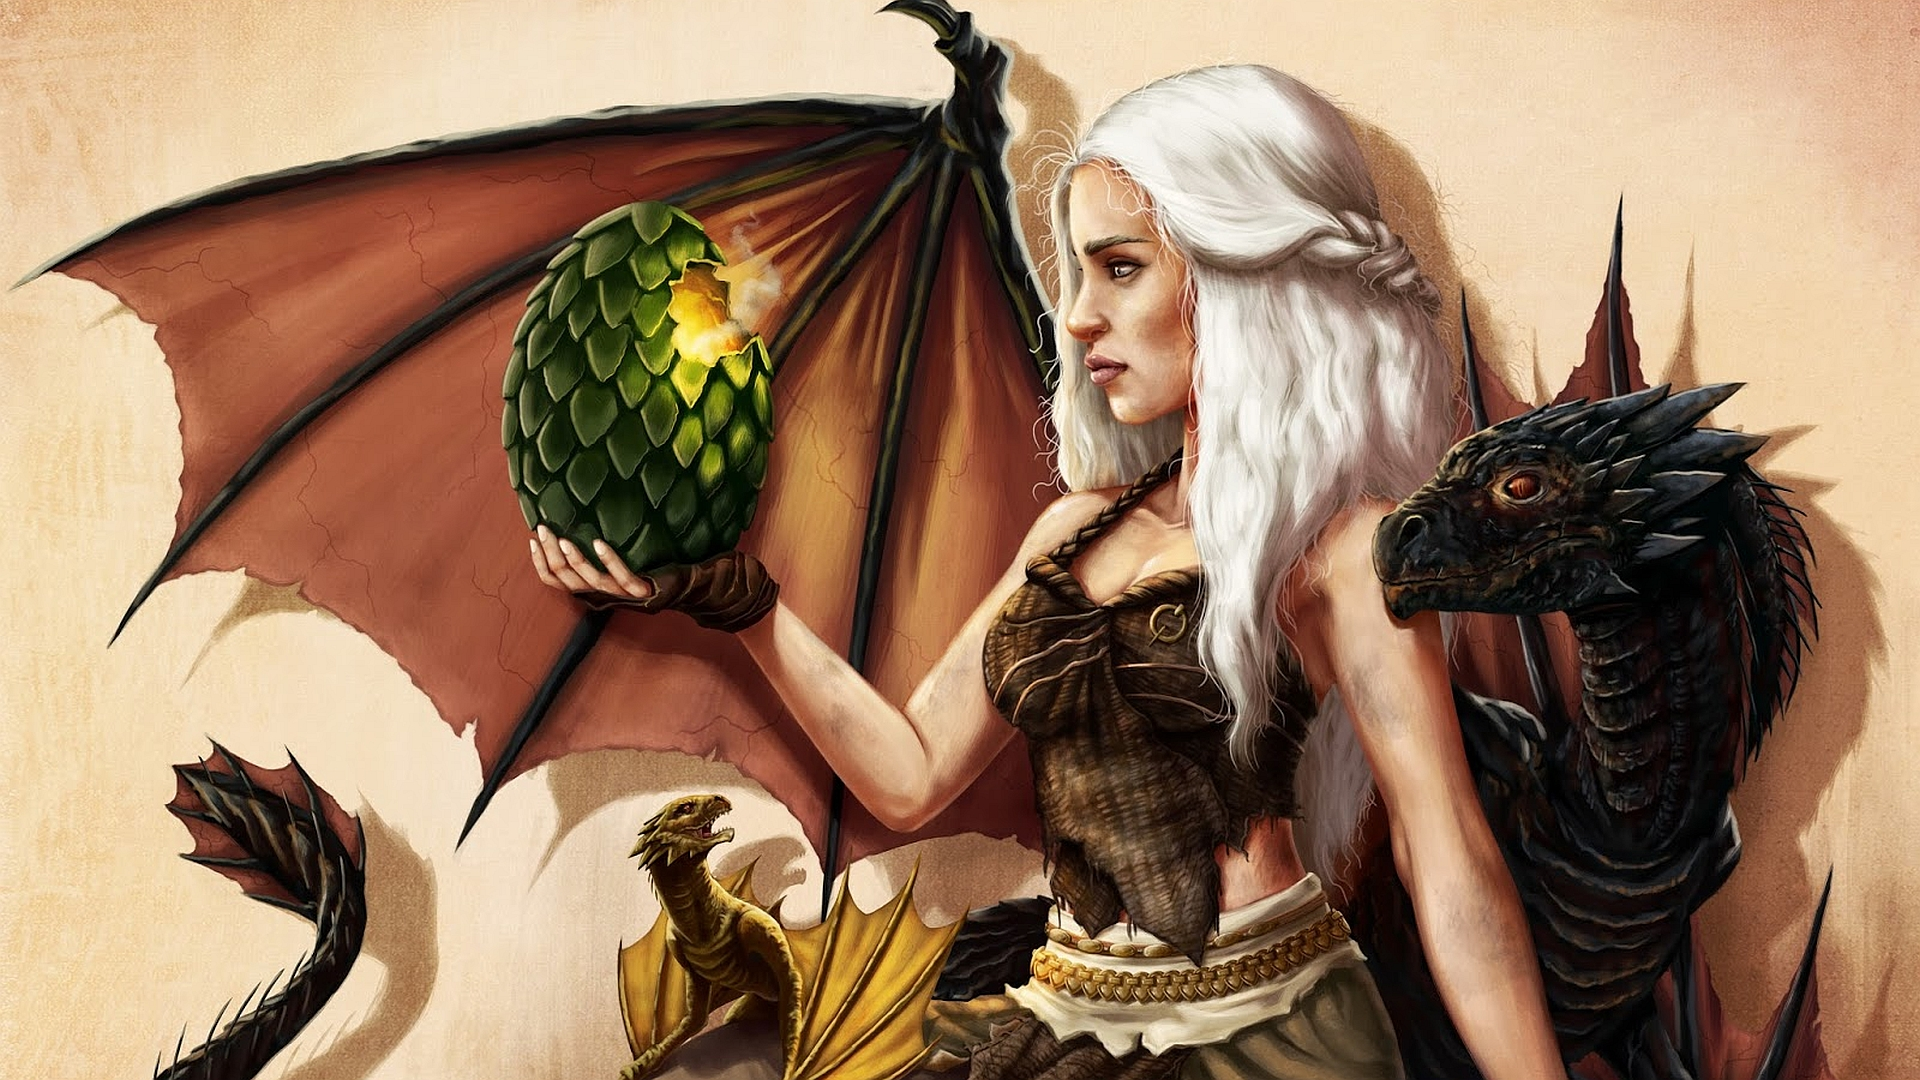 Game Of Thrones Wallpapers, Pictures, Images